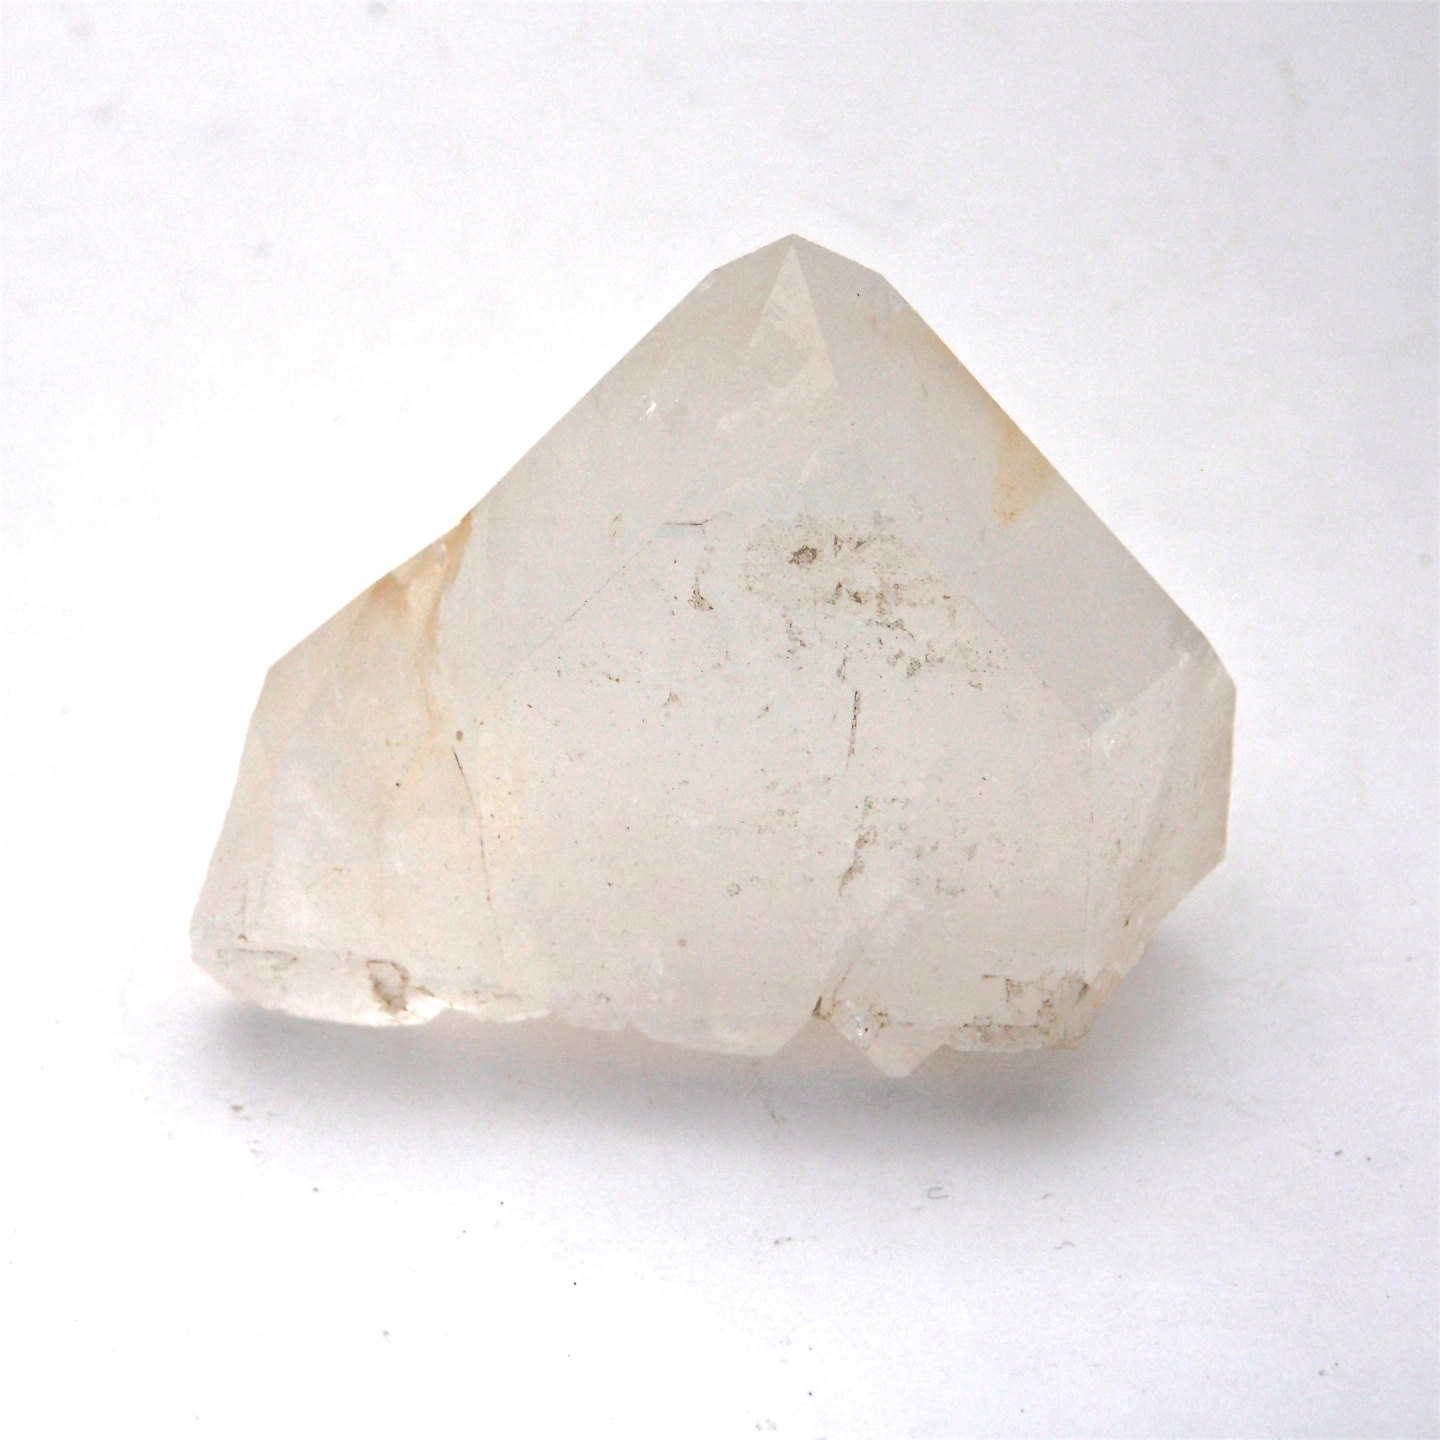 Clear Marble Rocks : Milky quartz from pakistan g crystals rocks and